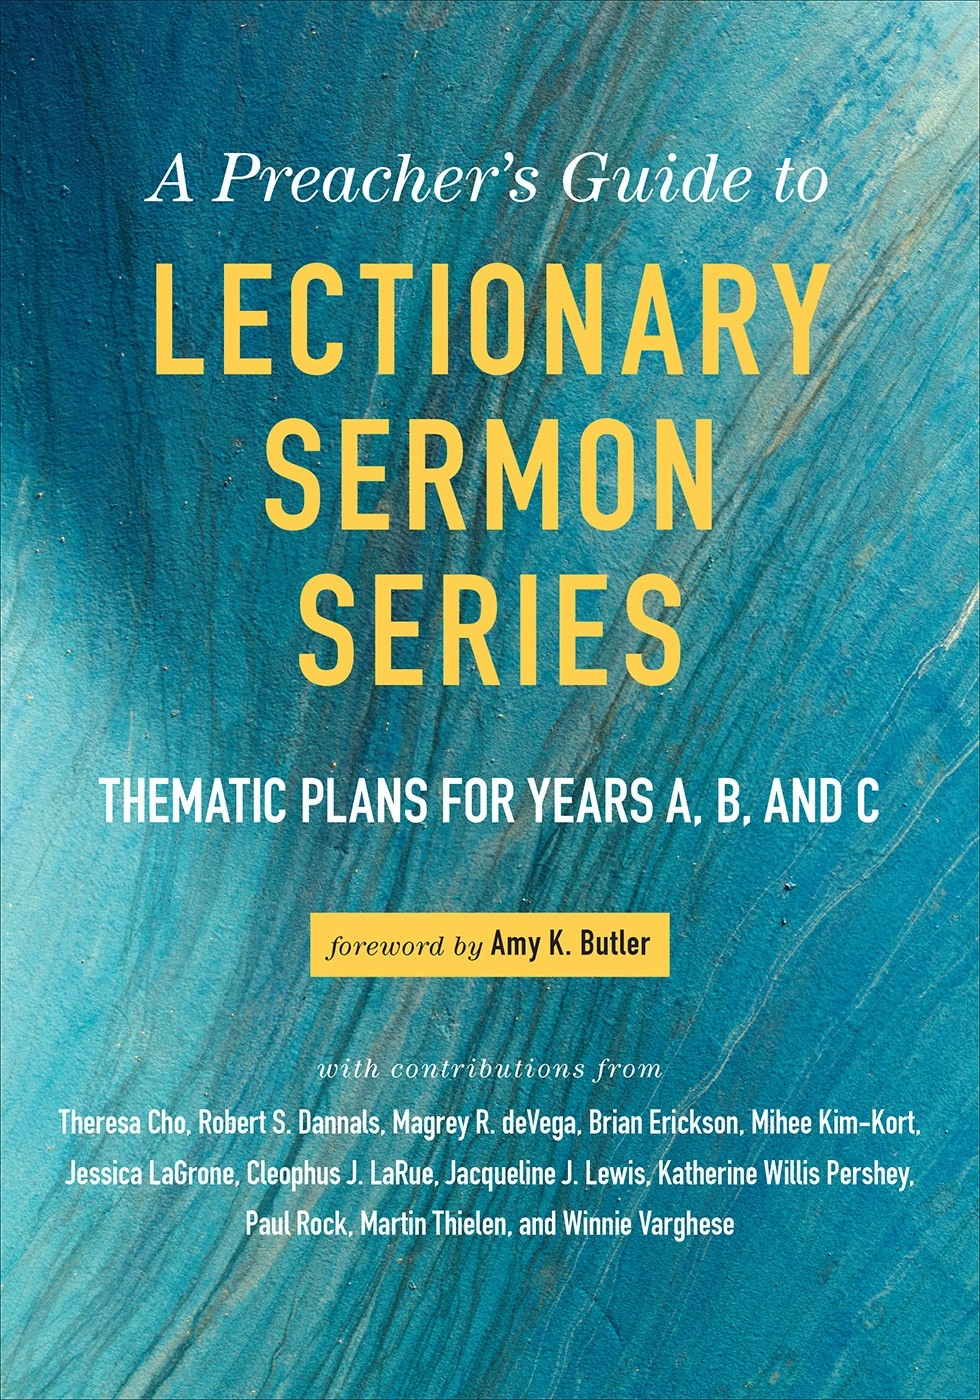 A Preacher's Guide To Lectionary Sermon Series Paper  Revised Methodist Lectionary